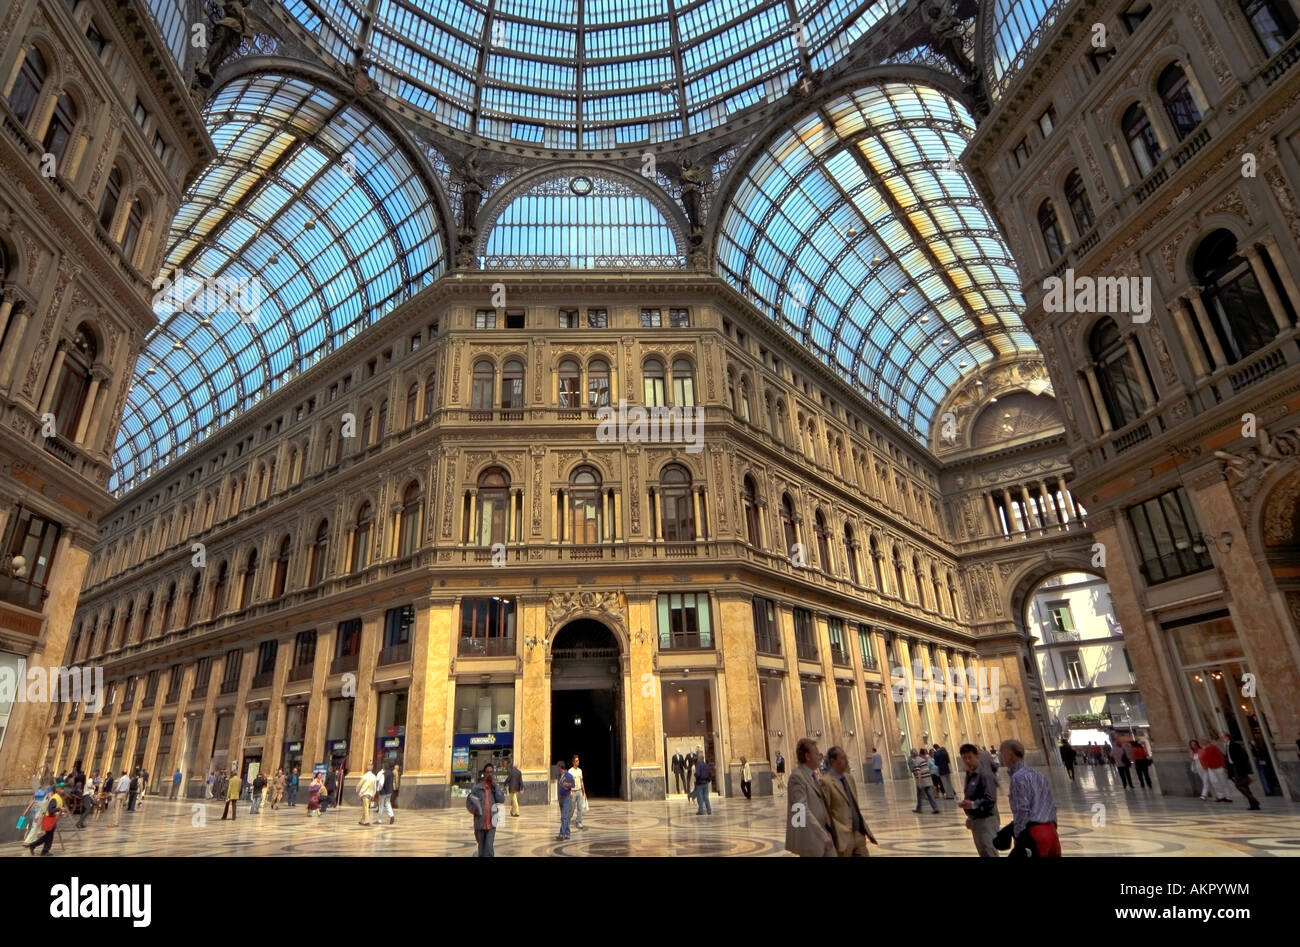 Ribbed Steel And Glass Roof Of Galleria Umberto I Via